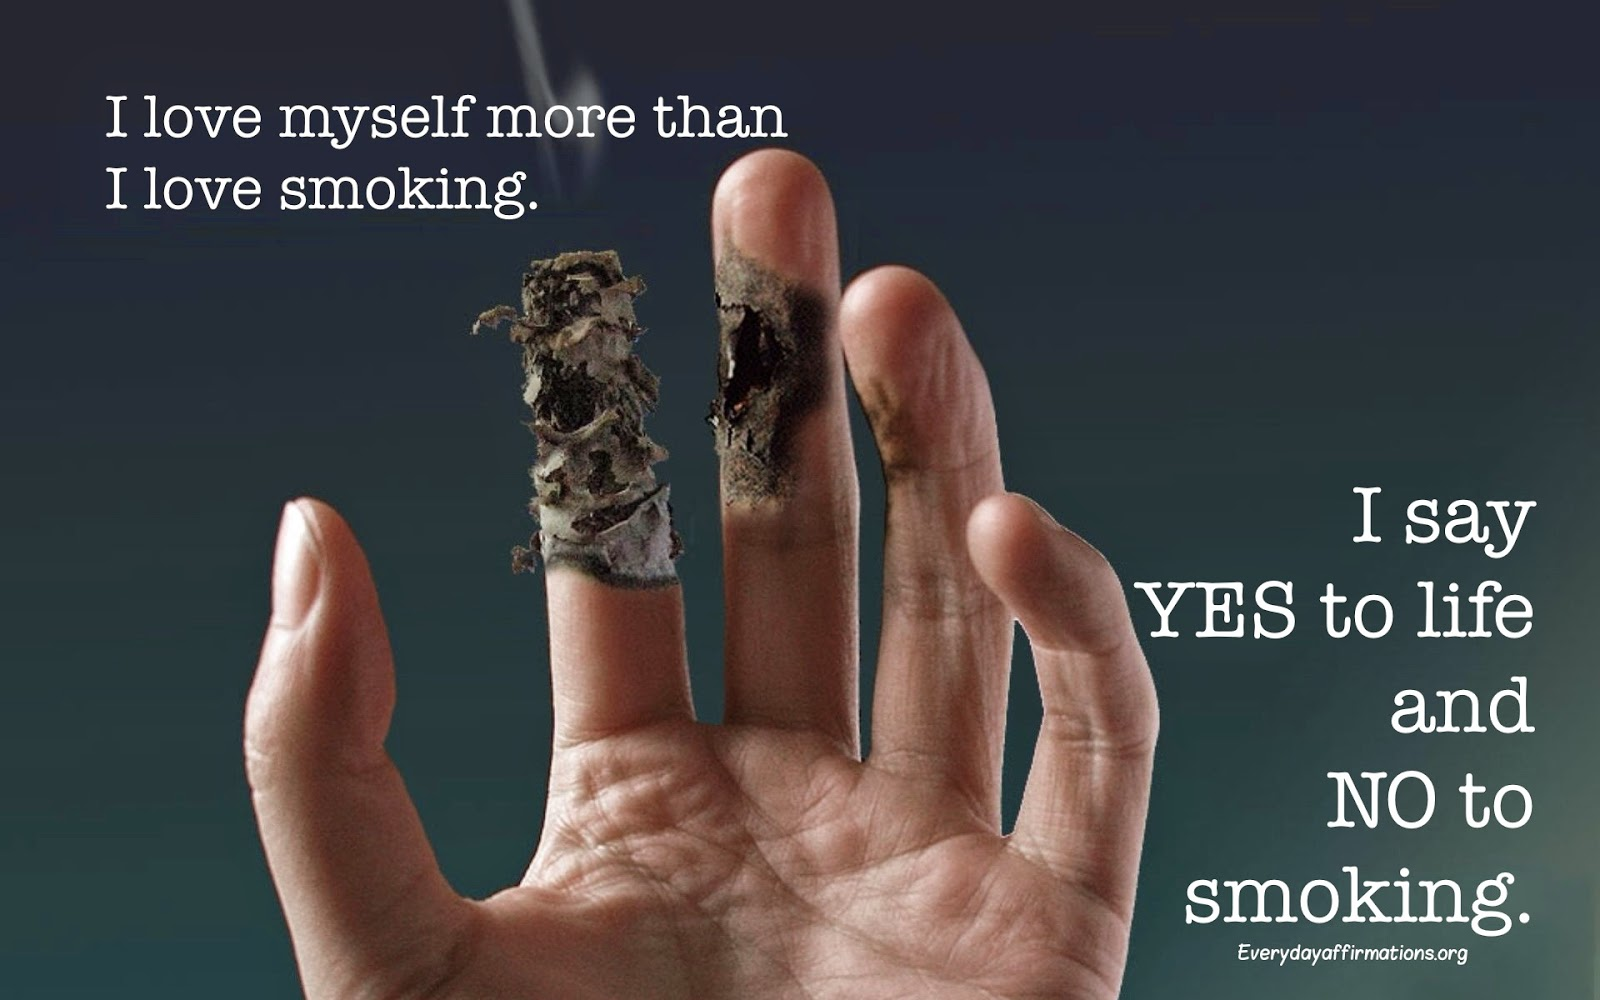 Affirmations for Employees, Daily Affirmations 2014, Affirmations to quit smoking